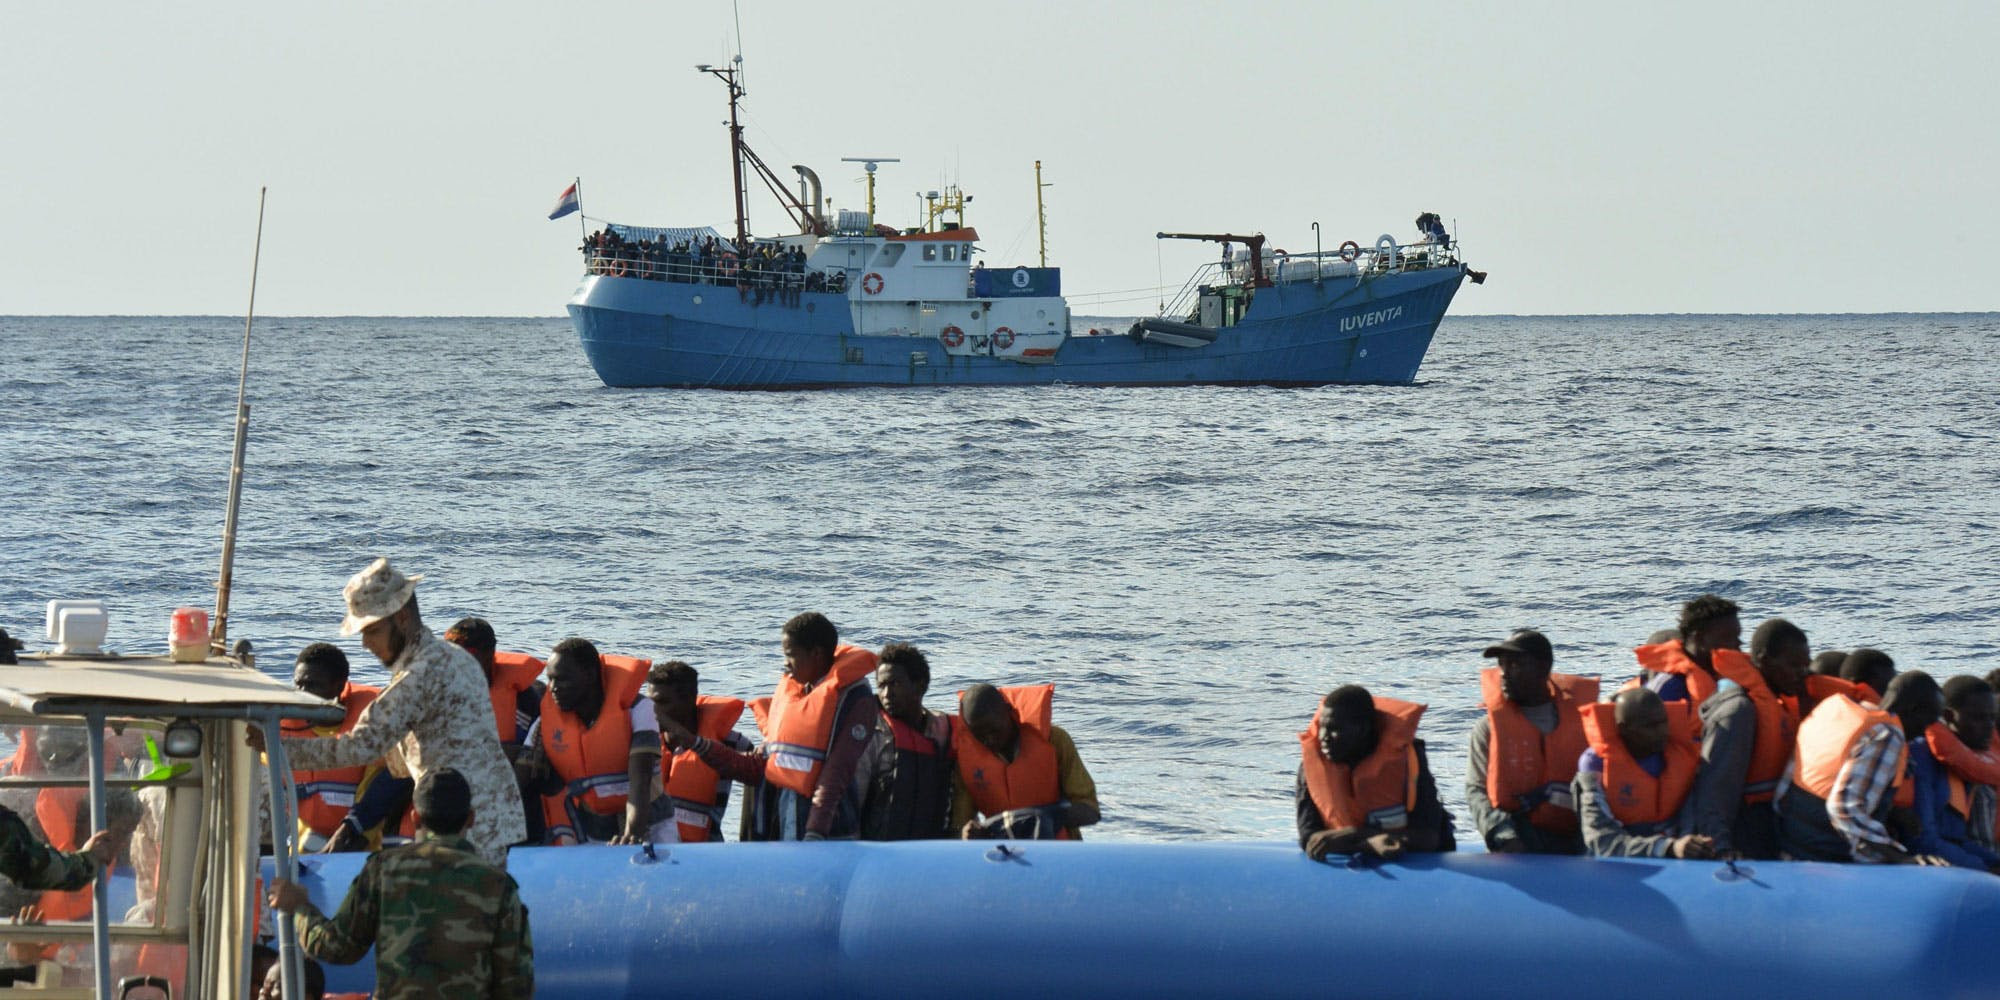 An Italian Court Decision Could Keep Rescue Boats From Saving Refugees in the Mediterranean